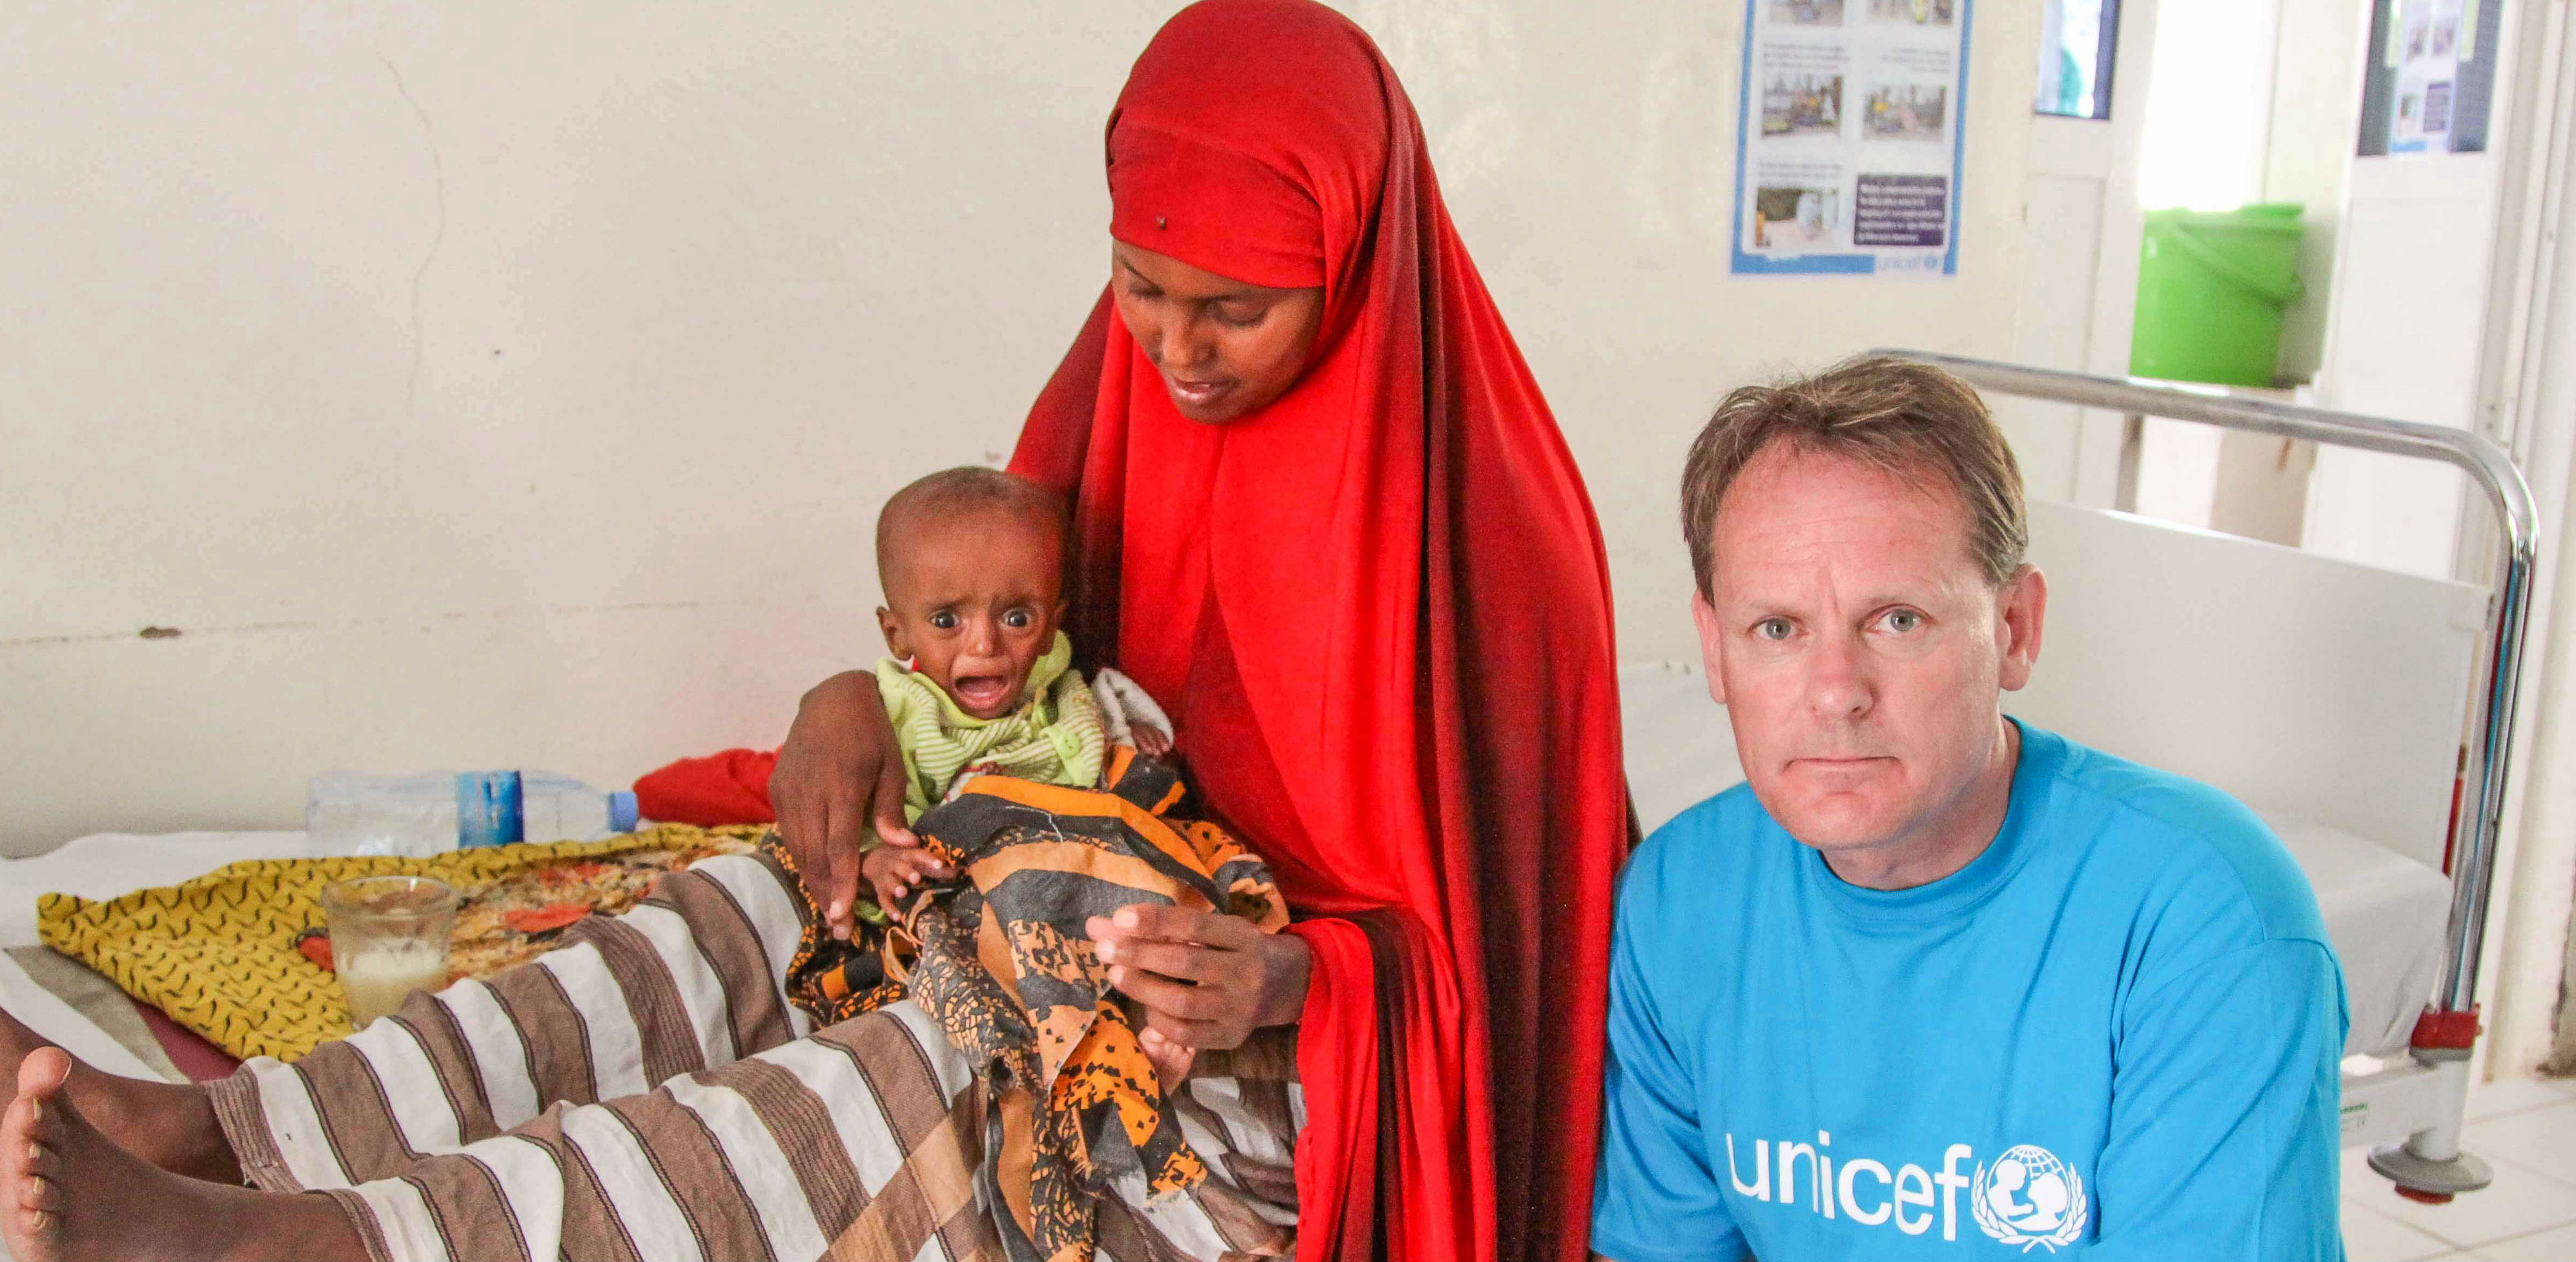 Hassan's story - UNICEF Ireland Chief on meeting critically ill children in Somalia